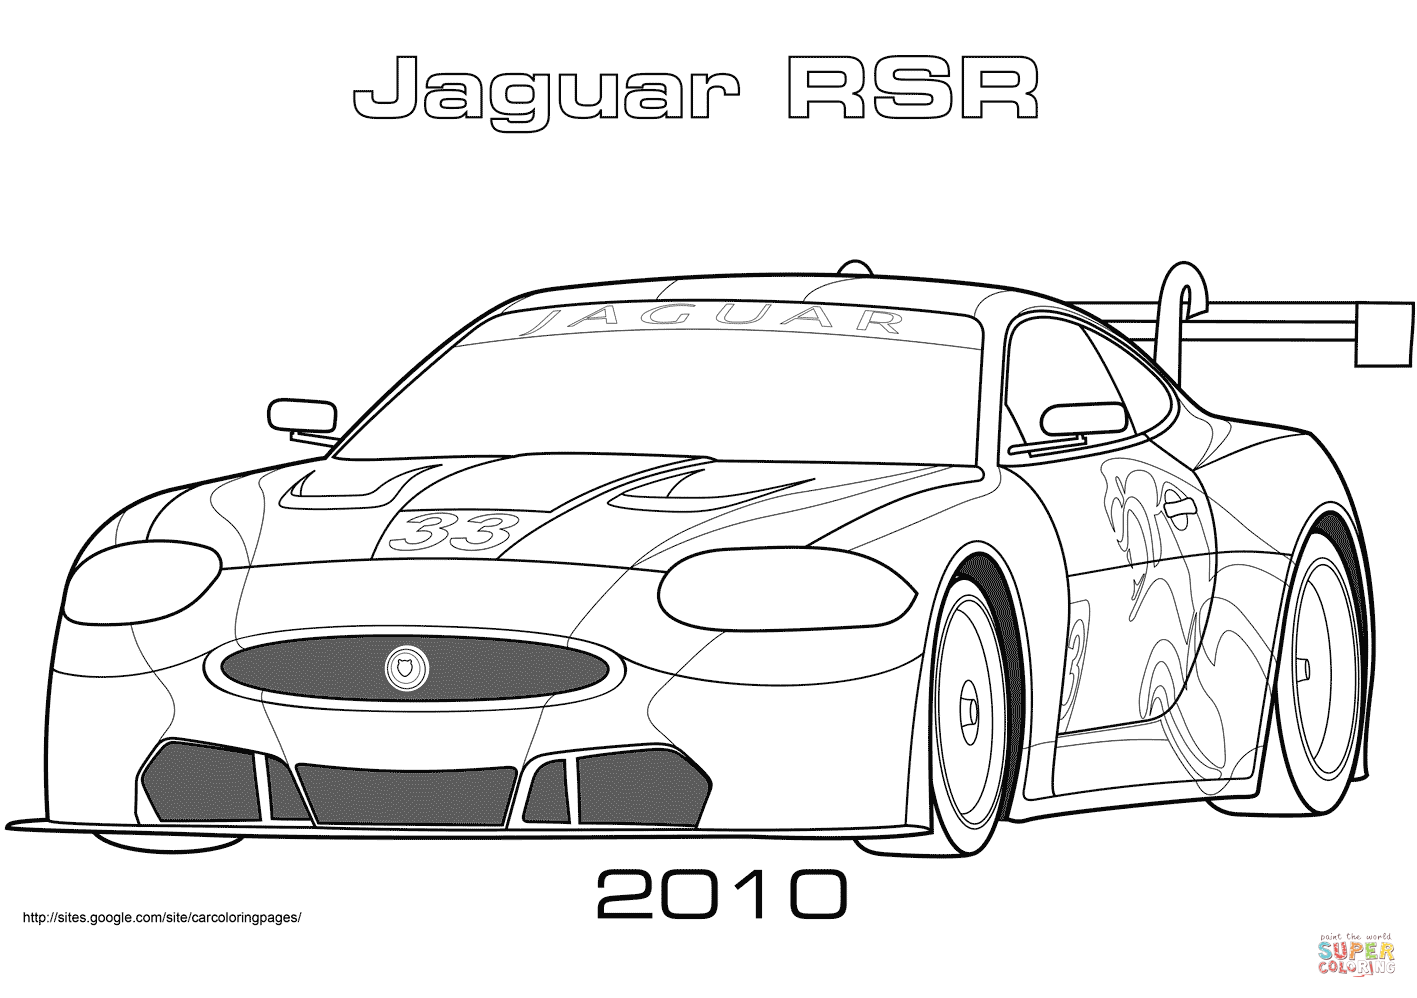 2010 Rsr Jaguar Xkr Gt2 Coloring Page Free Printable Coloring Pages